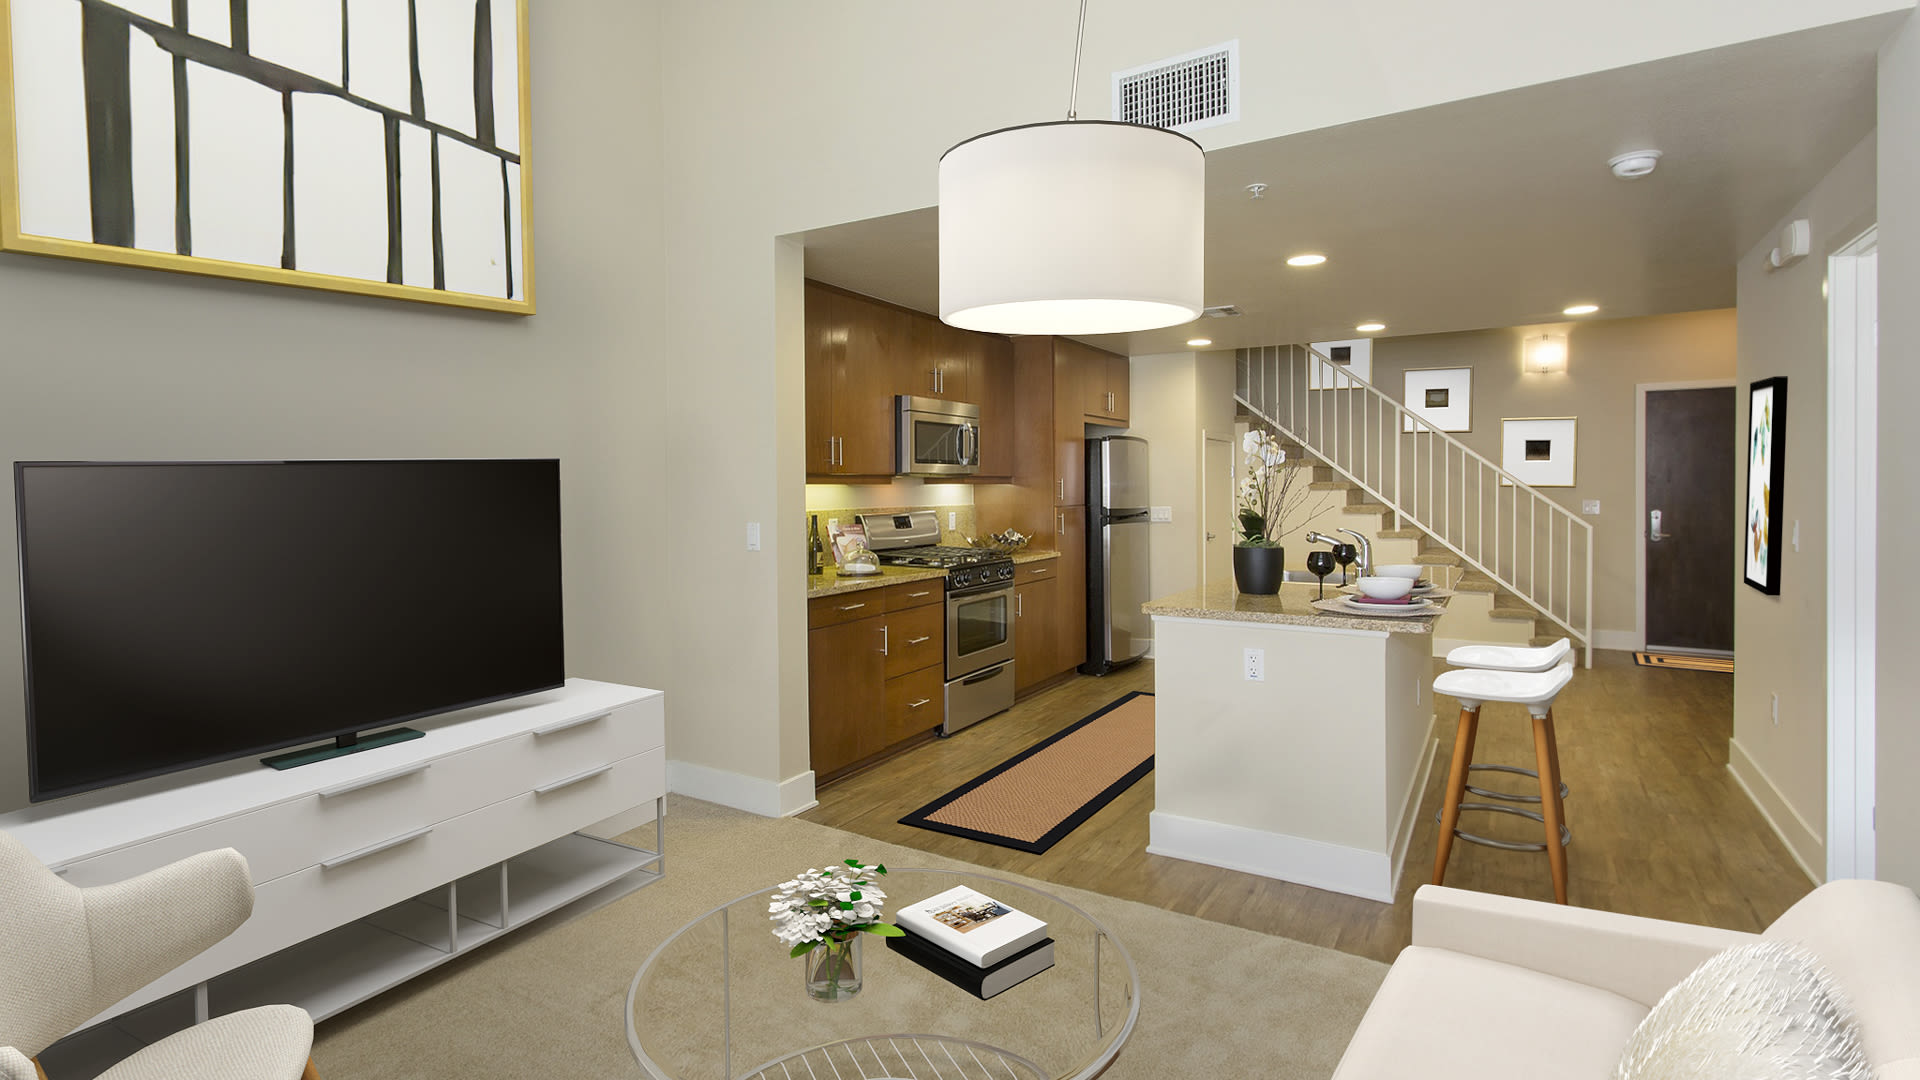 Westgate Apartments - Living Room and Kitchen